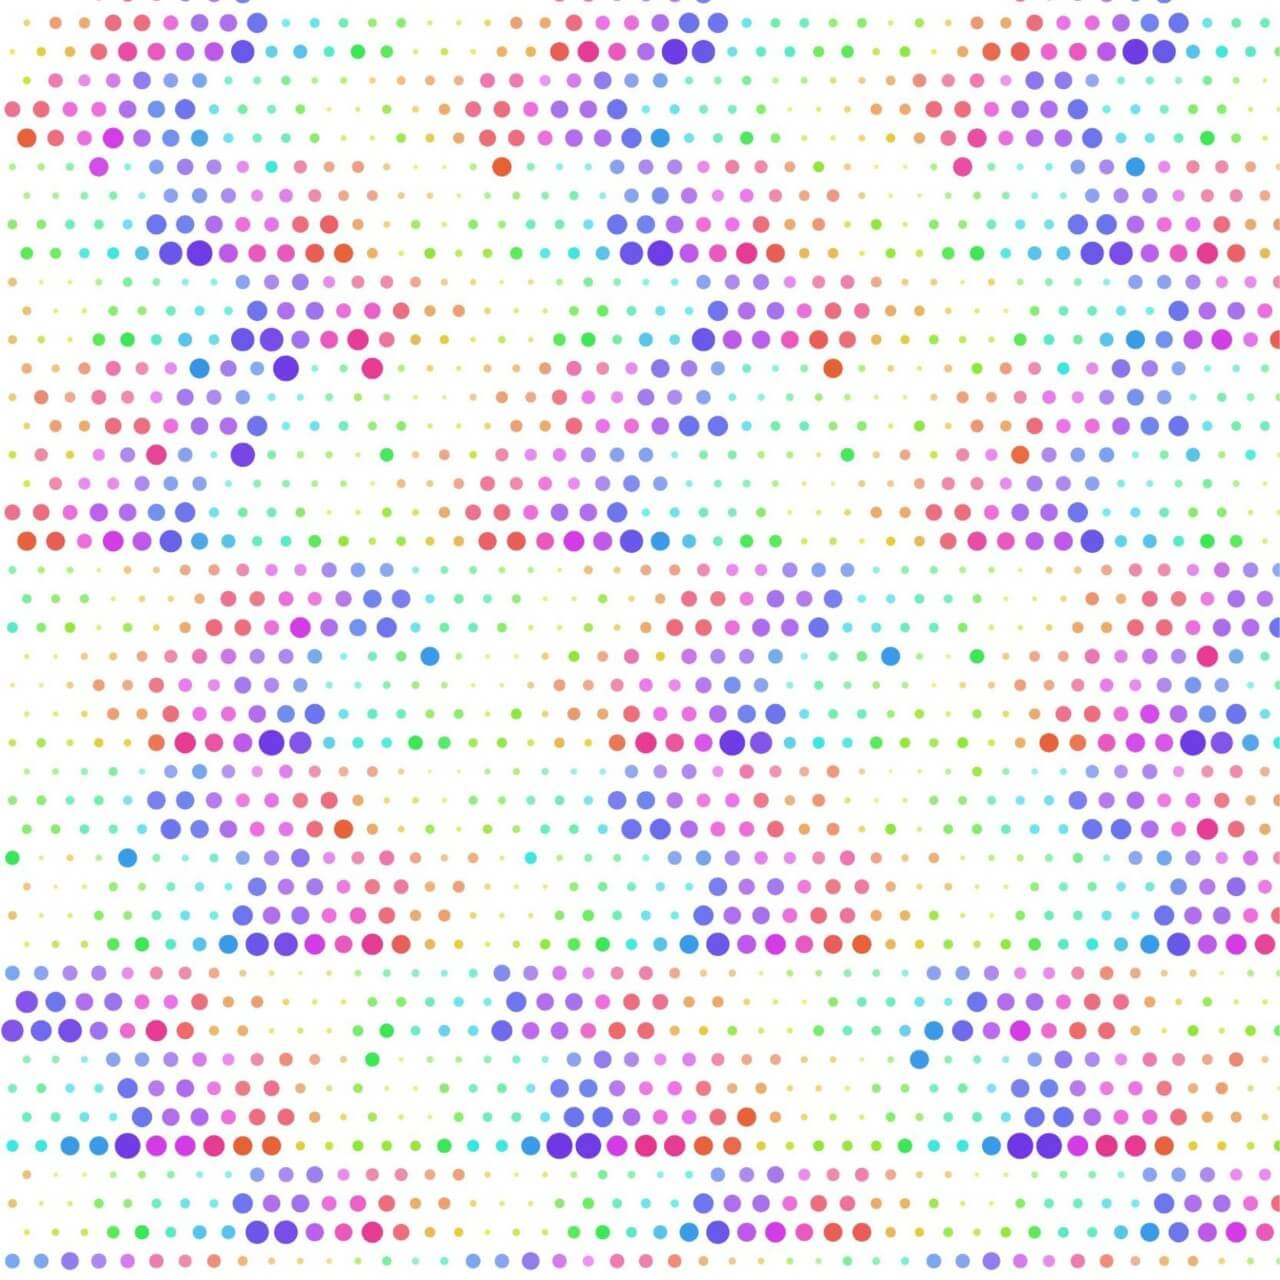 """Free vector """"Abstract illustration with dots"""""""